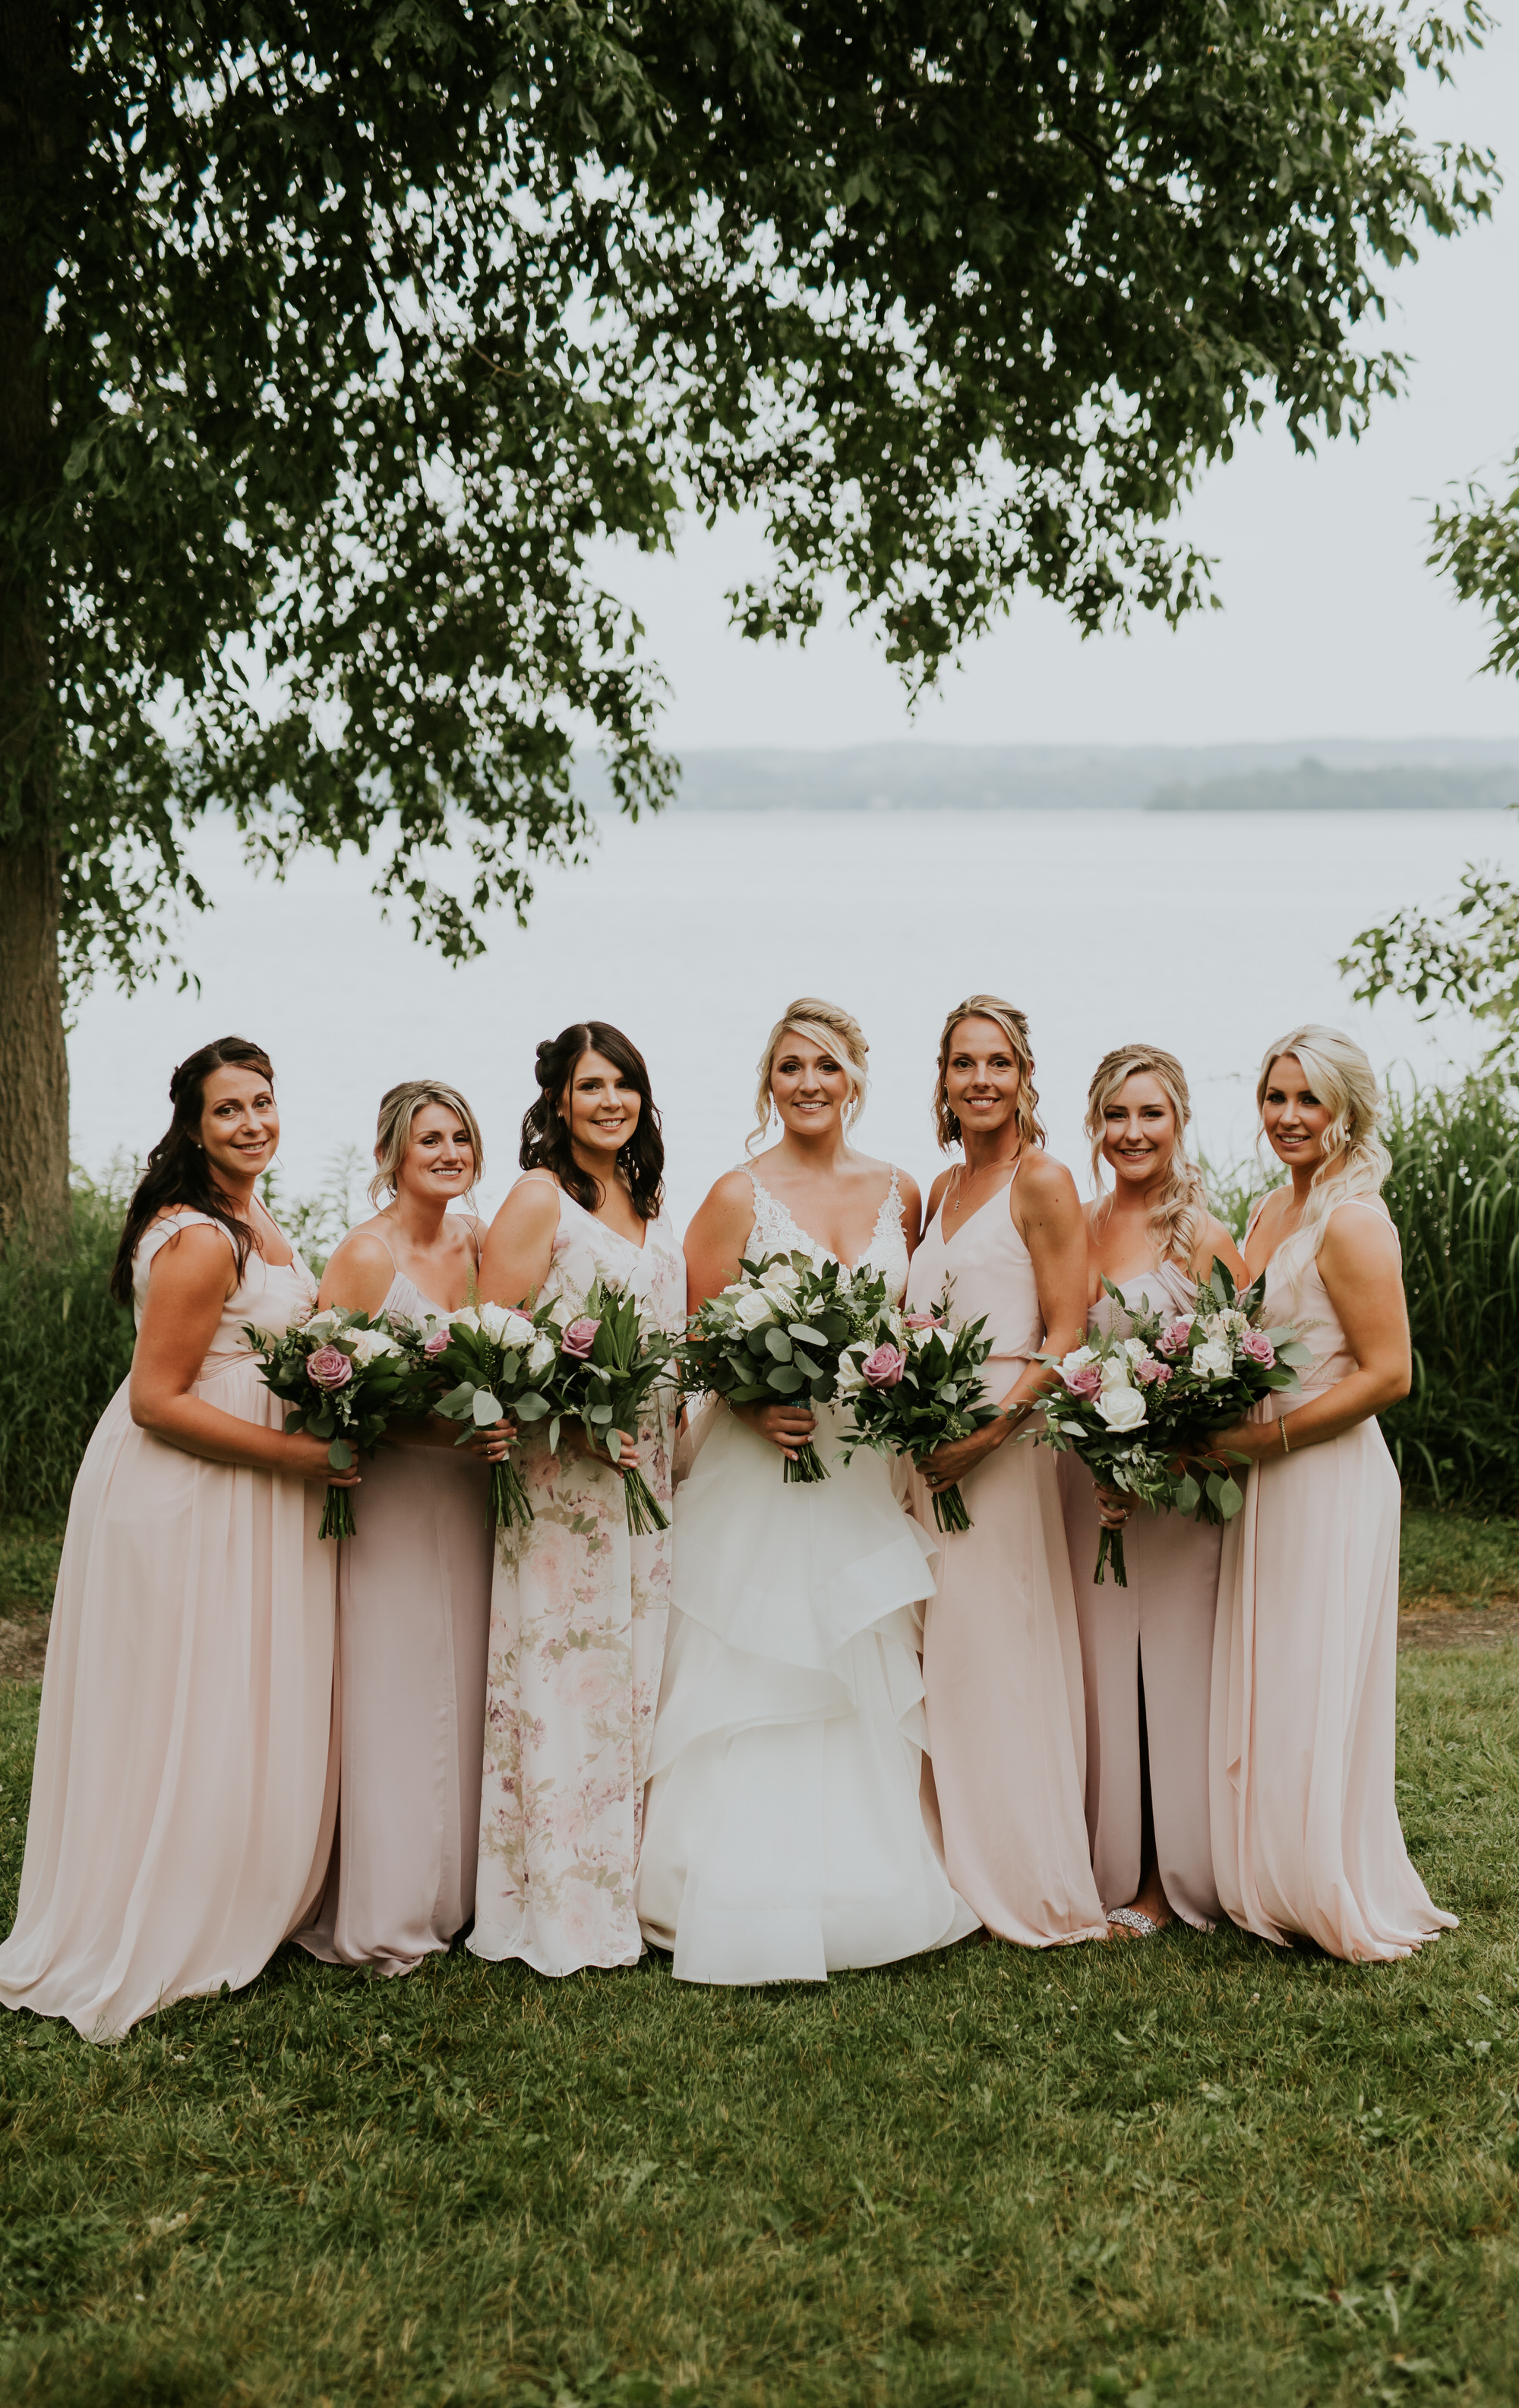 Elmhirst Resort Wedding - Bridal party portrait